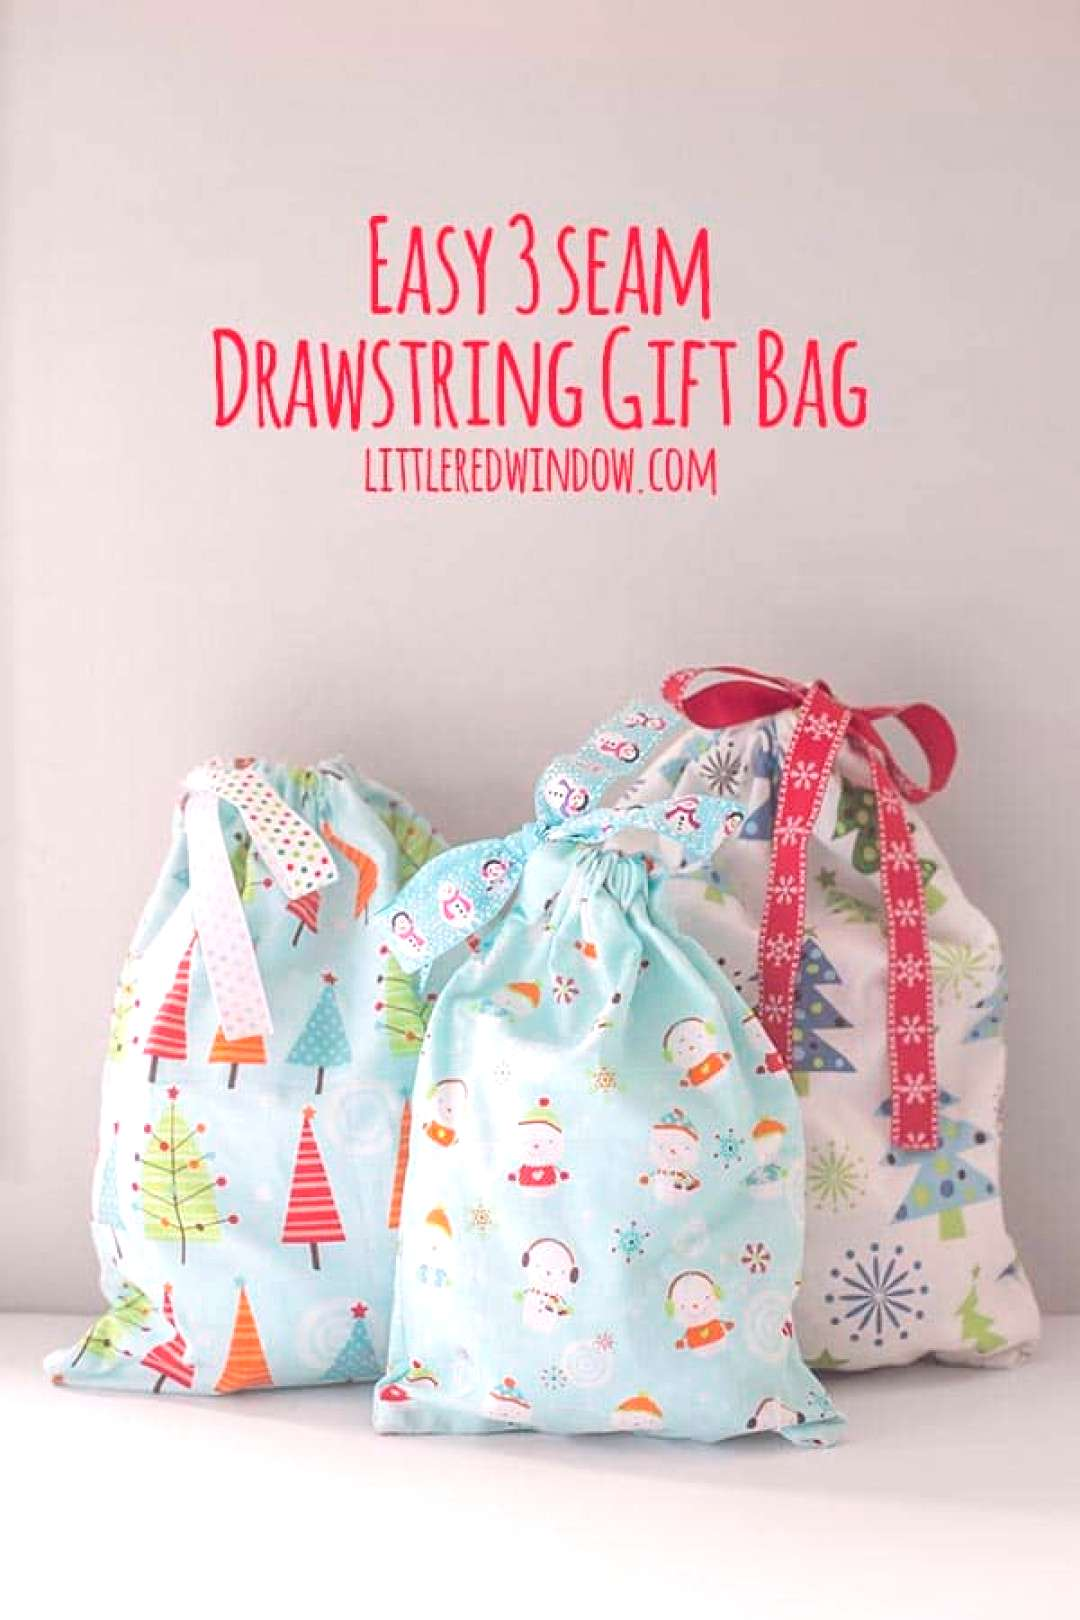 Sew this Easy 3 SEAM drawstring gift bag for your Christmas presents this year, they look cute and